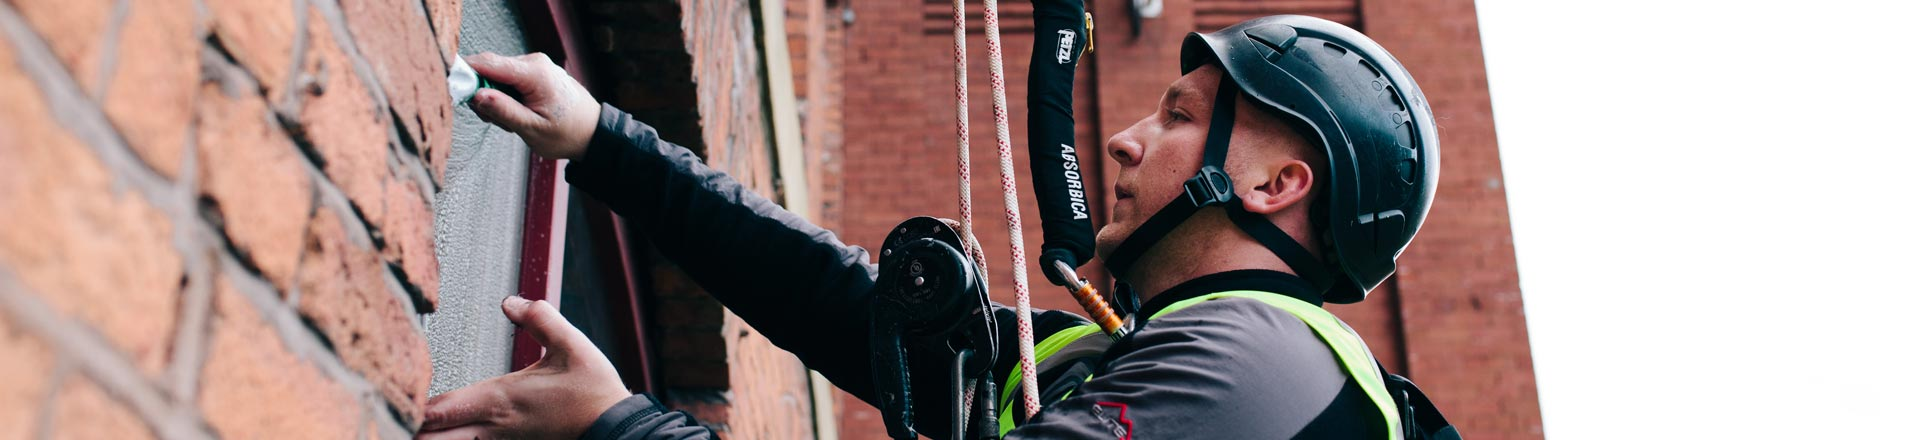 Abseiling/Rope Access Window Cleaning in Liverpool - HCS Cleaning Services